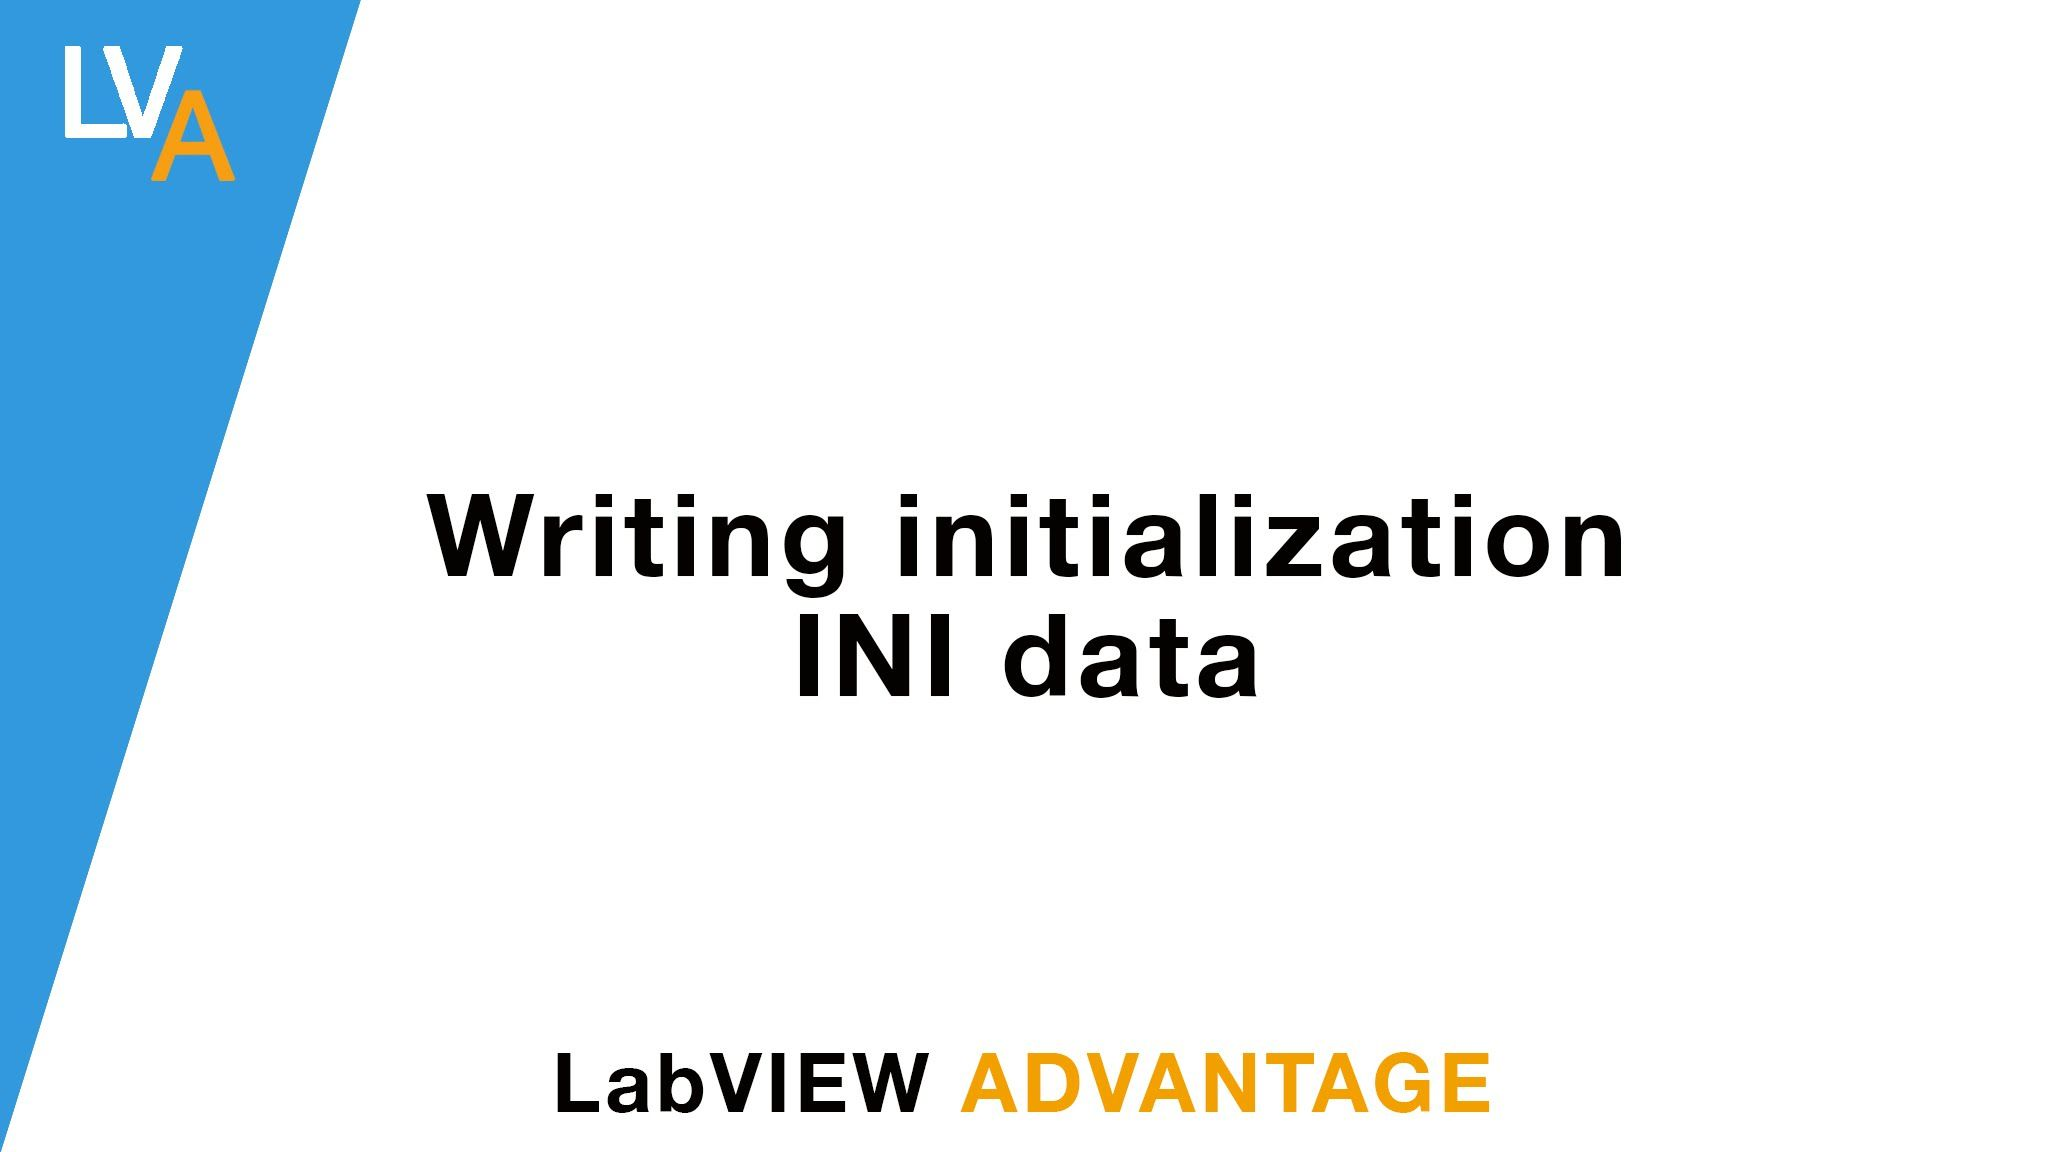 LabVIEW How to write into configuration INI file | LabVIEW